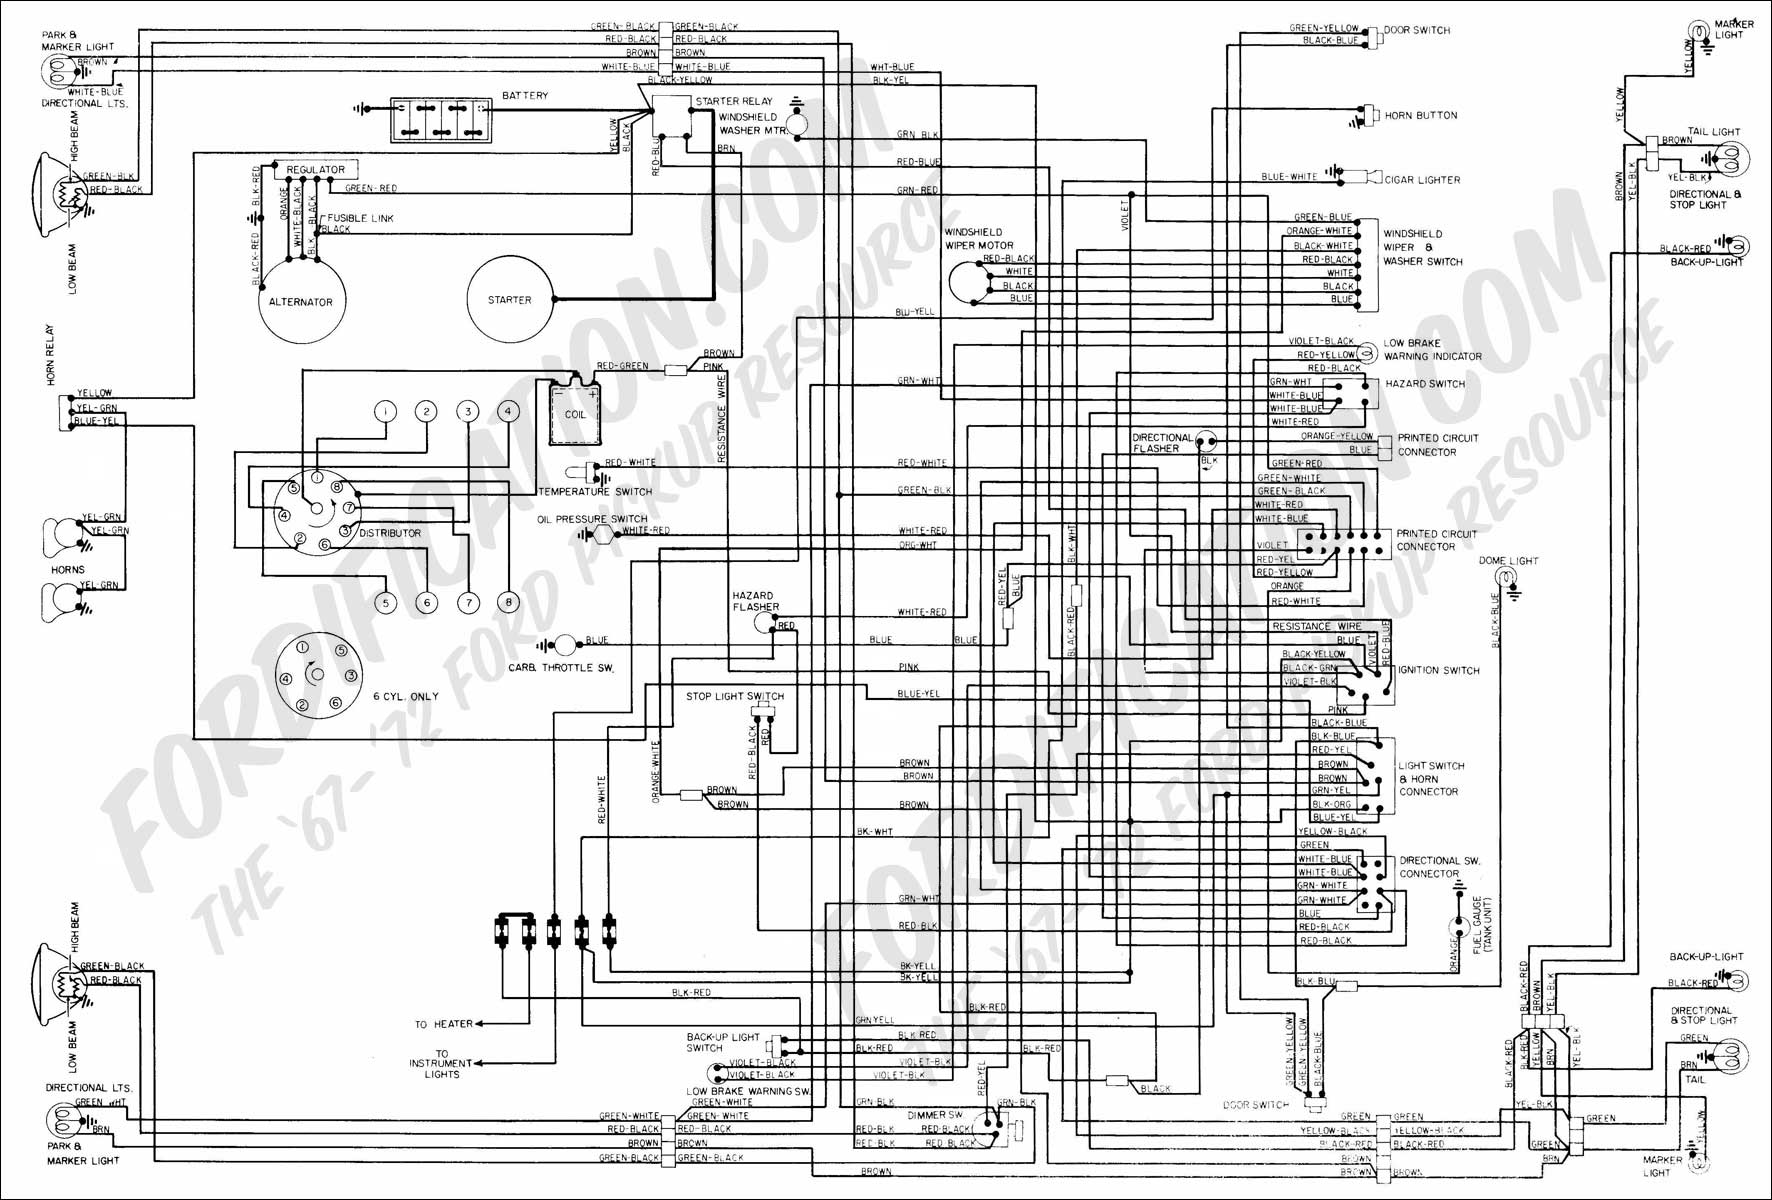 90 F150 Starter Diagram Wiring Diagrams 1999 Chevy Cavalier Relay I Have A And About 2 Months Ago It Wouldn T Start